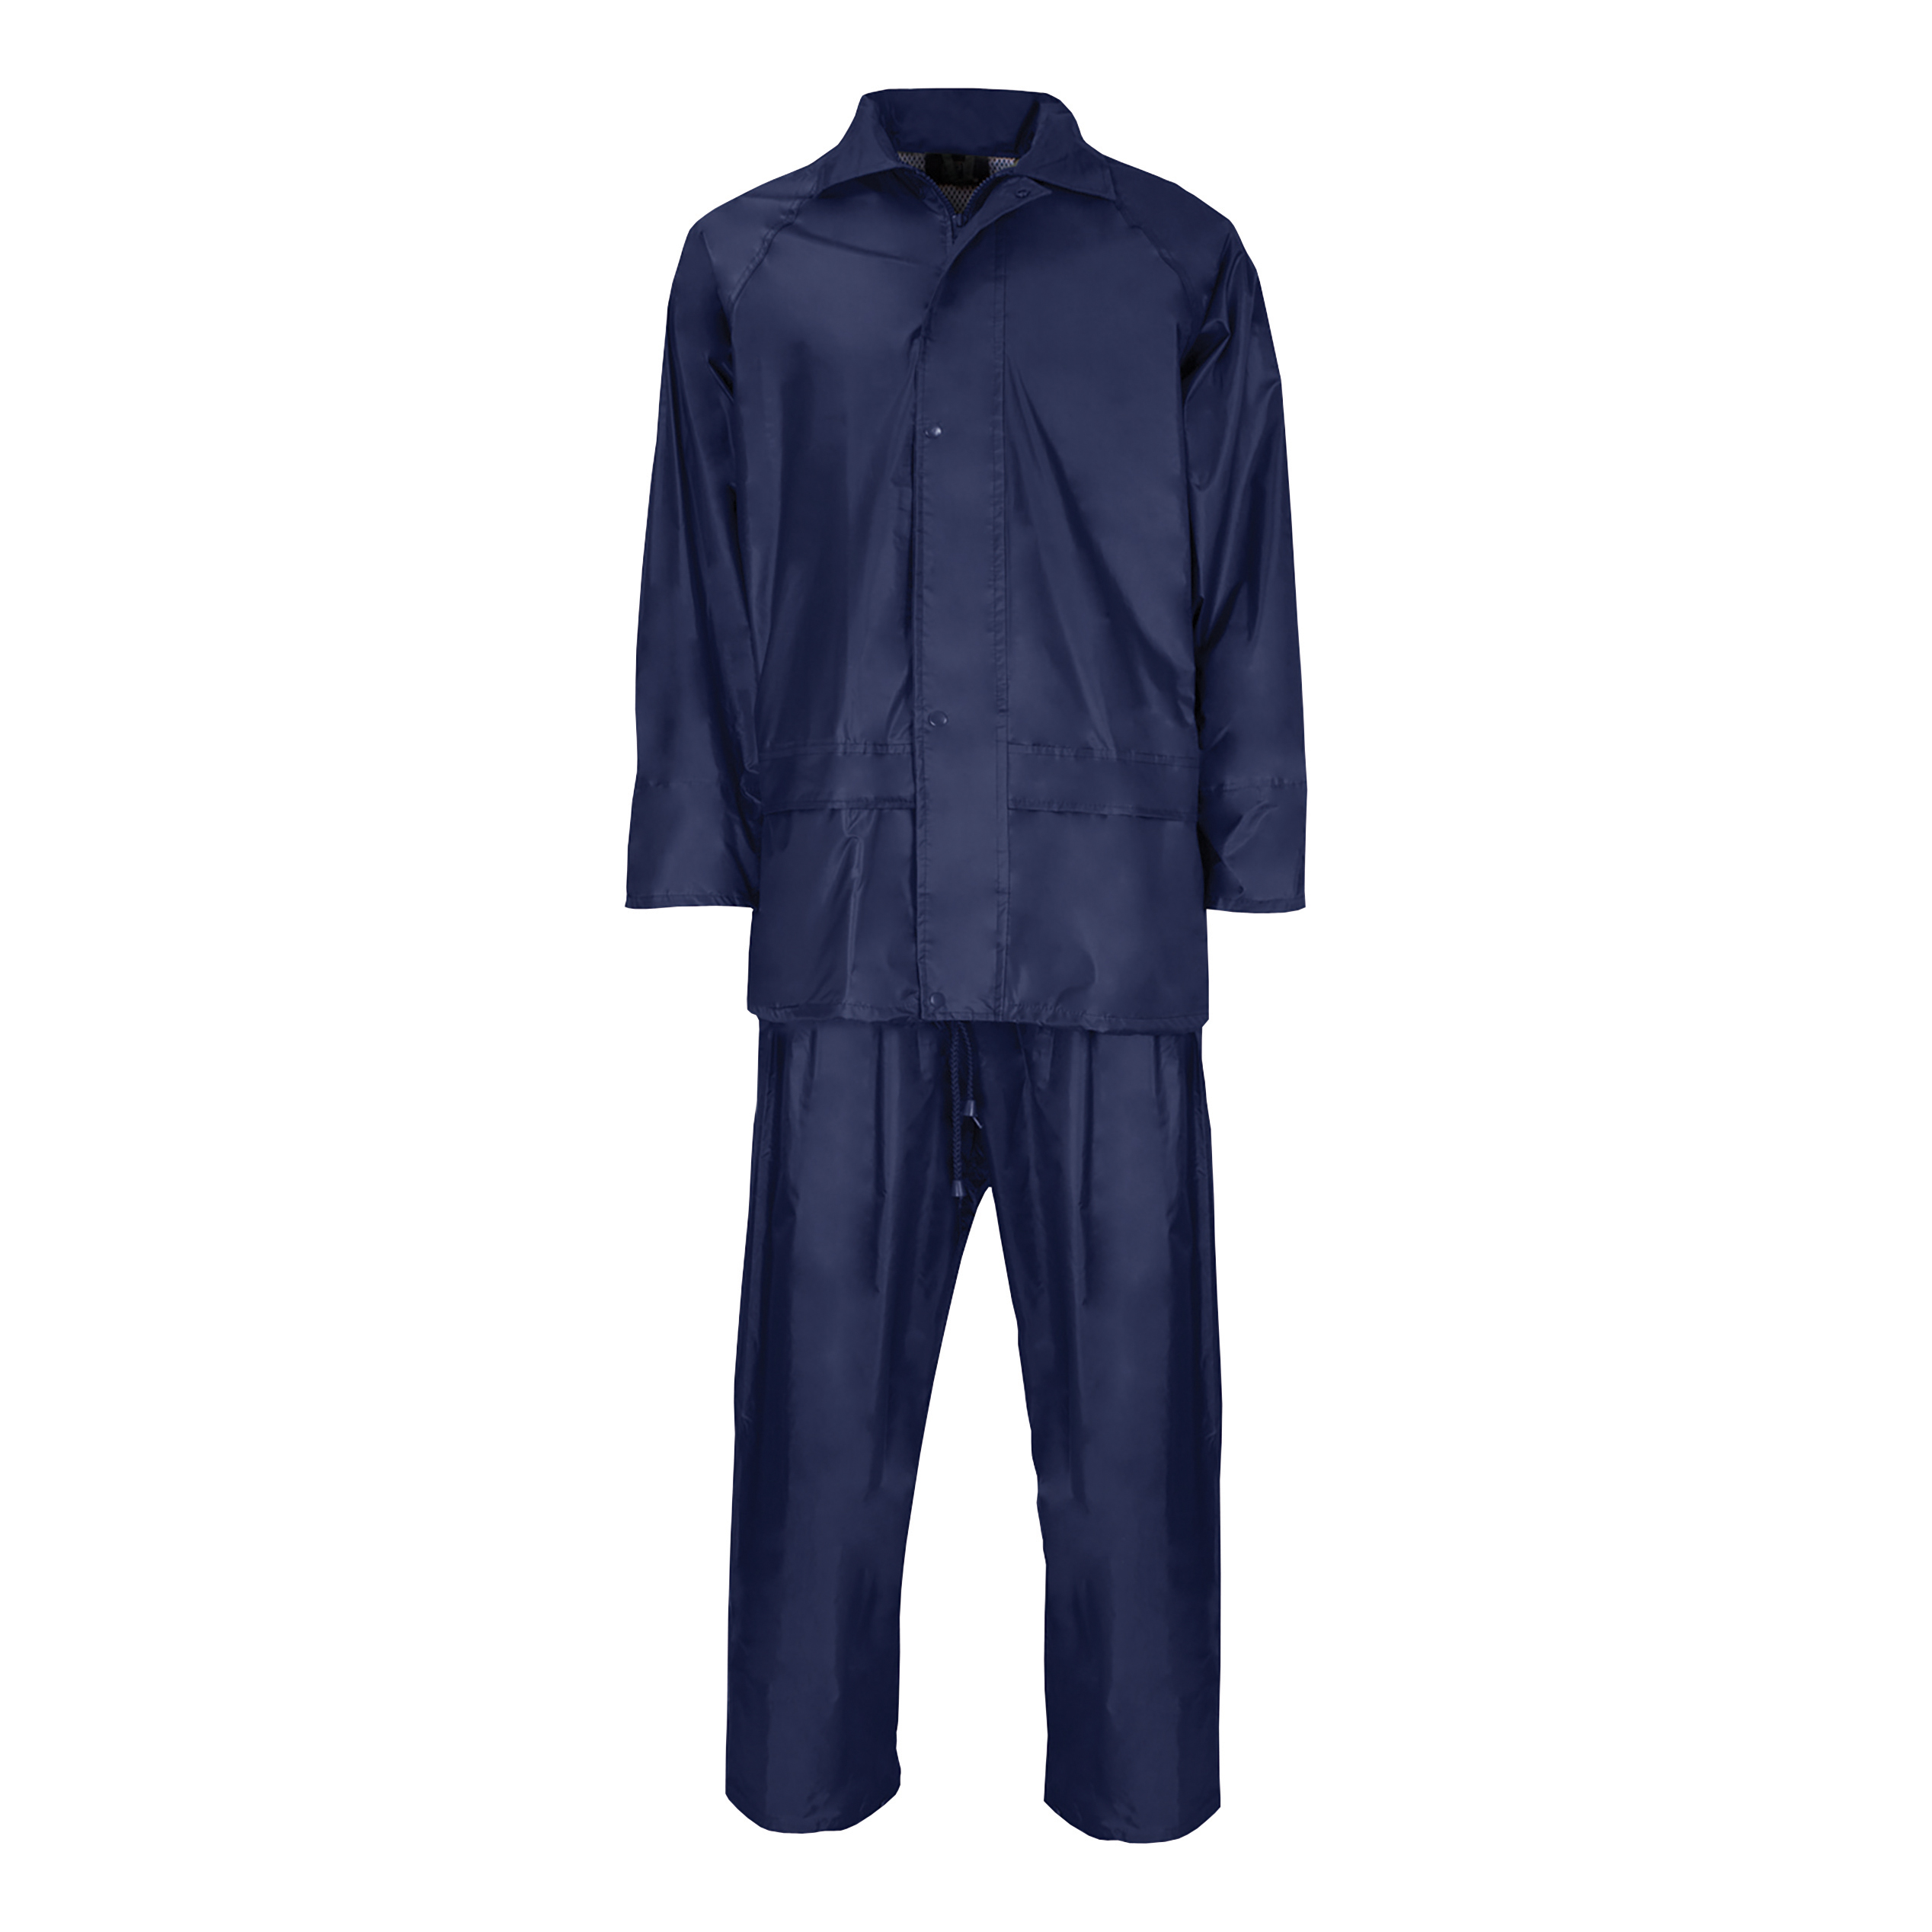 Rainsuit Polyester/PVC with Elasticated Waisted Trousers Small Navy Ref NBDSNS *Approx 3 Day Leadtime*